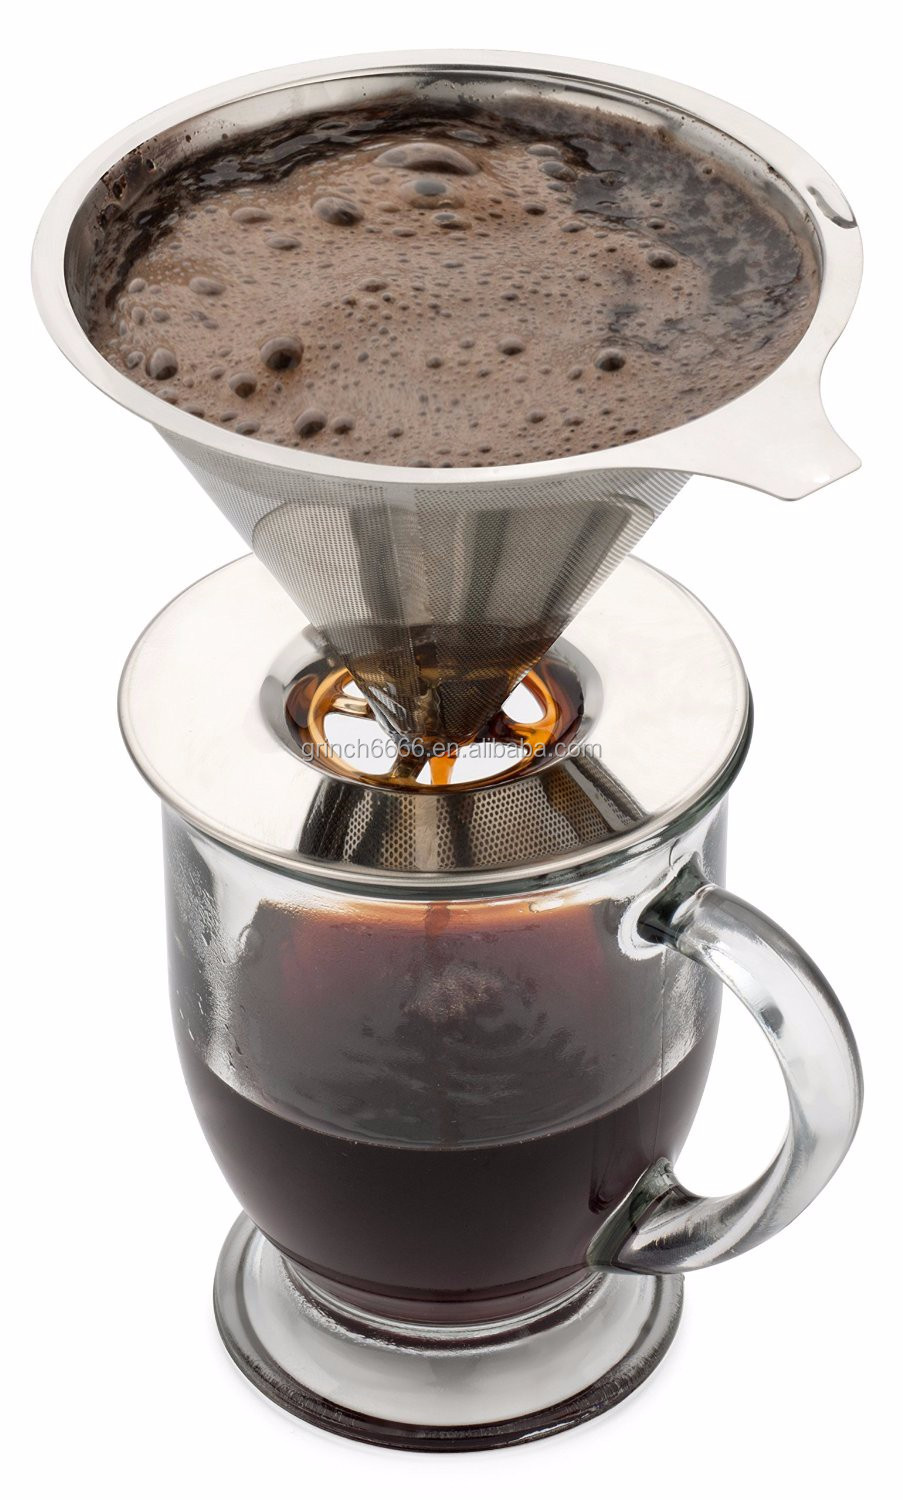 Paperless Pour Over Coffee Dripper Stainless Steel Reusable Filter And Single Cup Maker